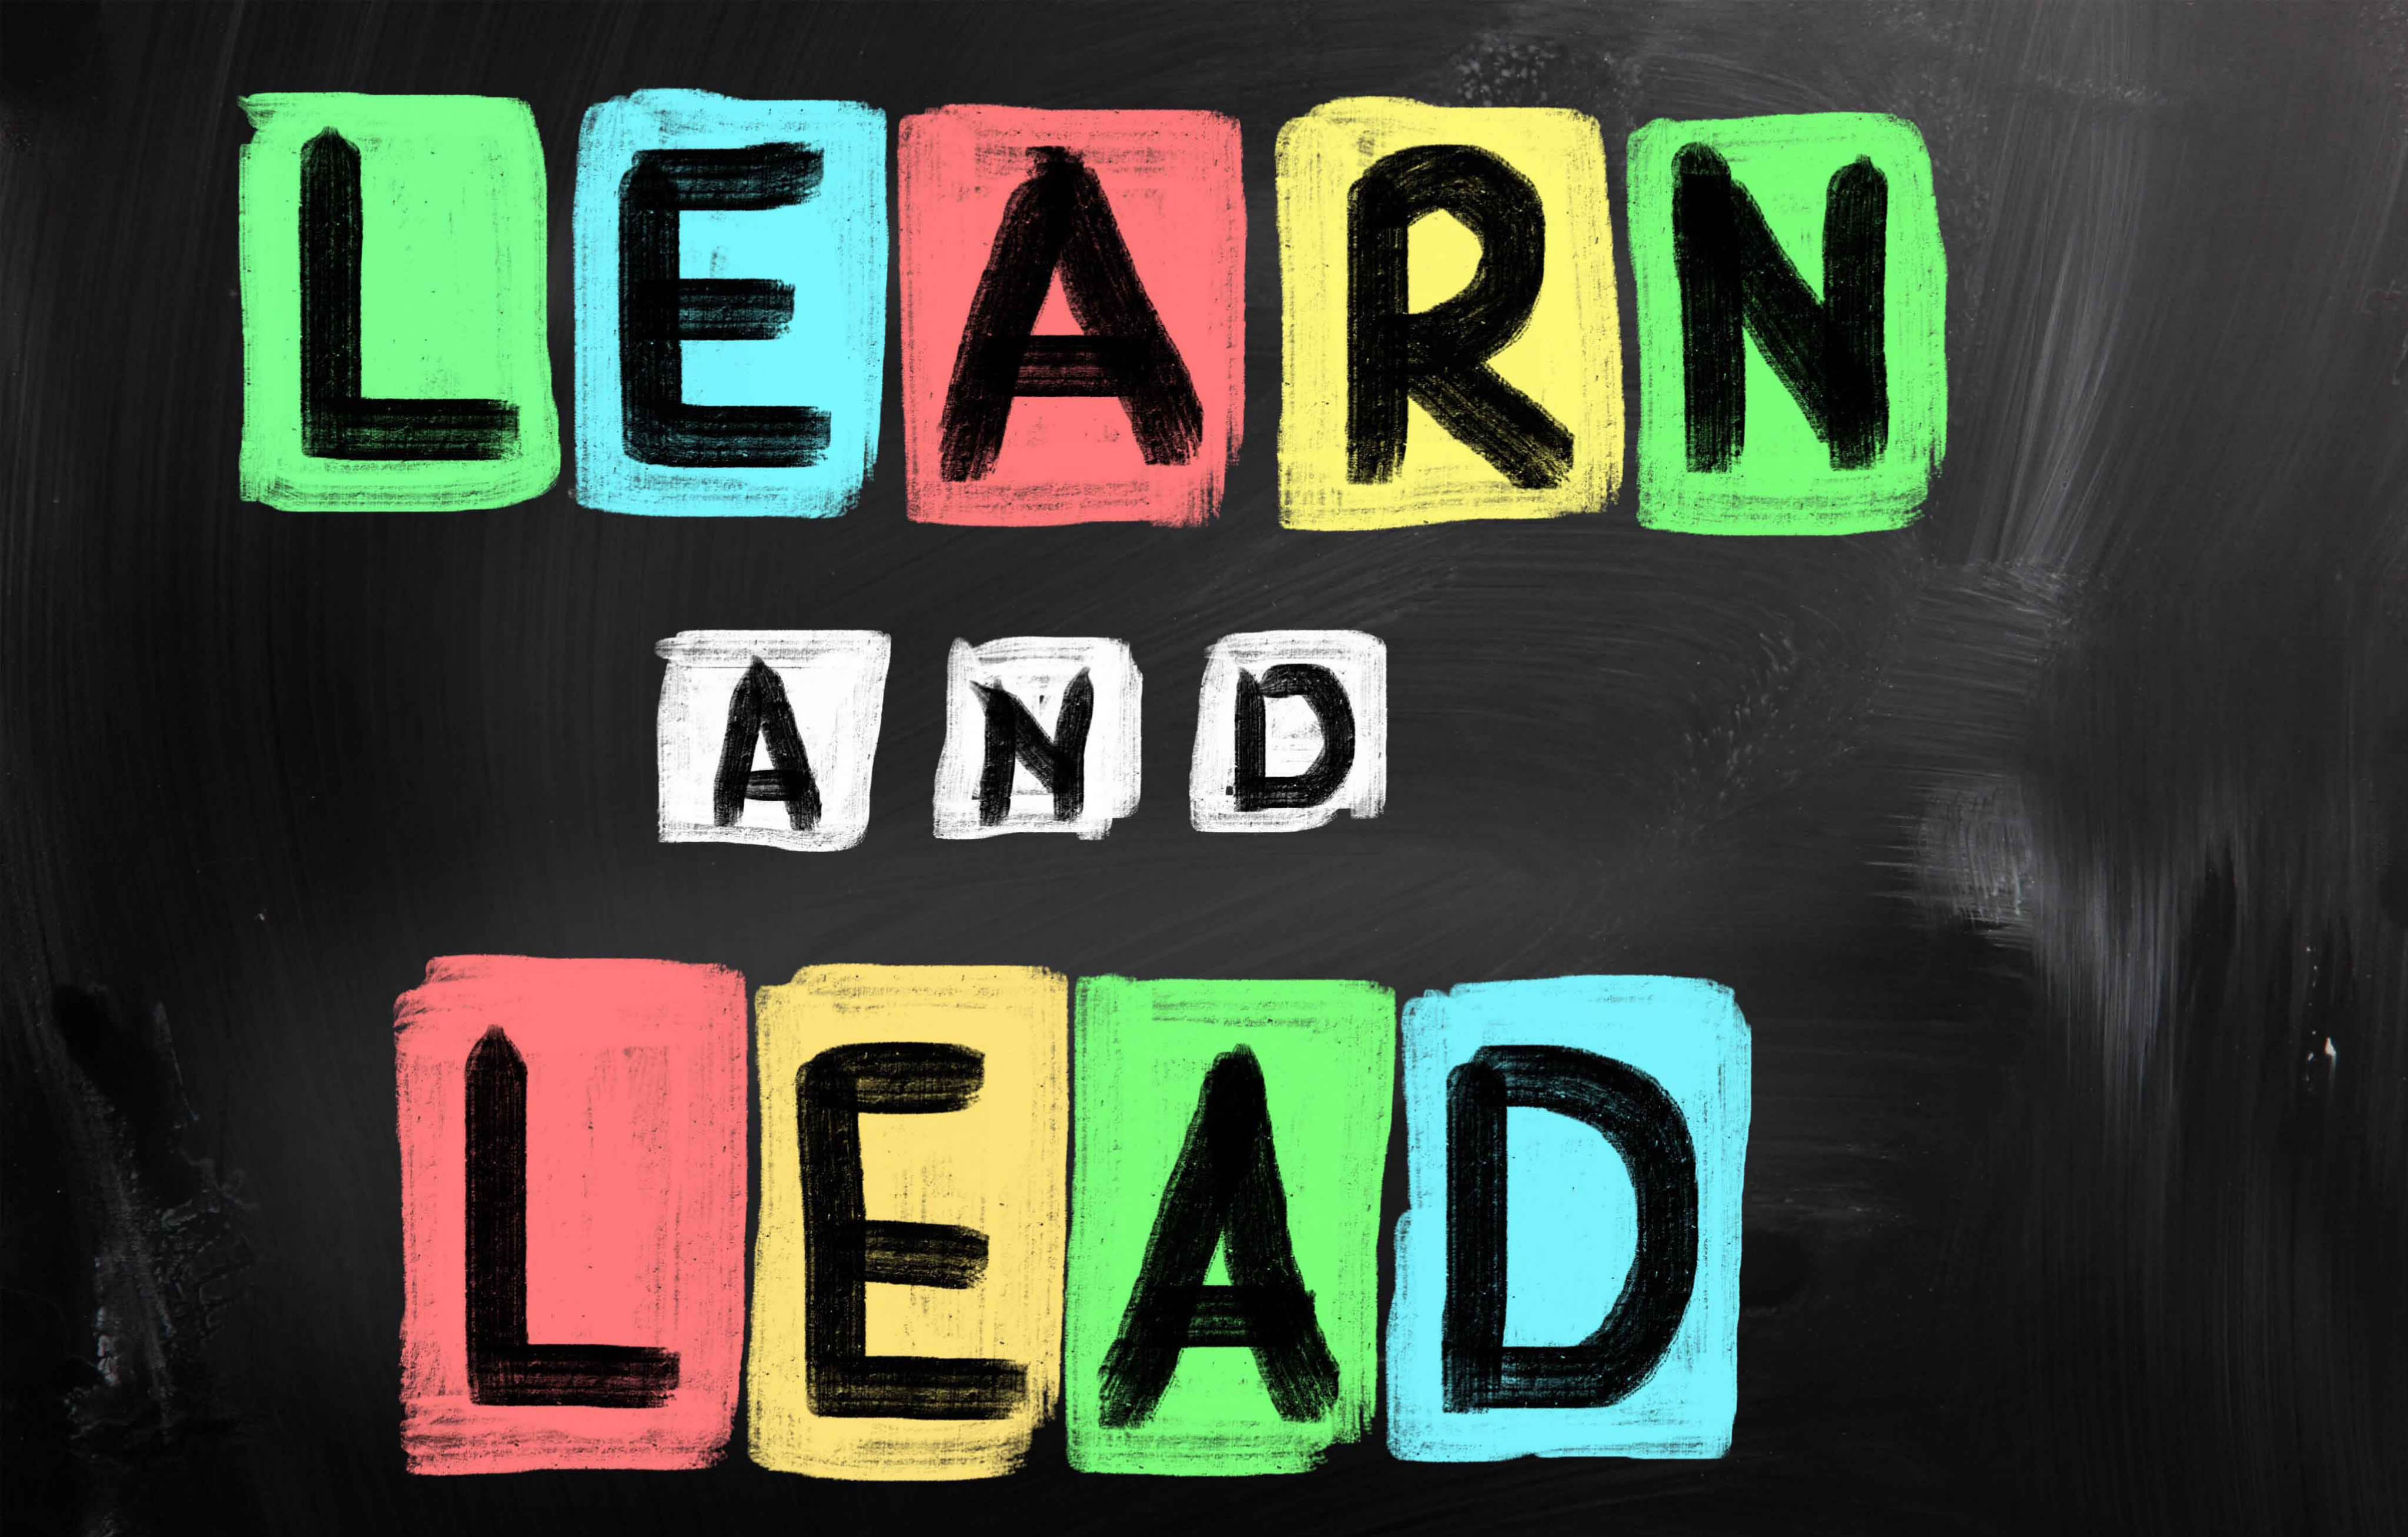 Learn and Lead on Chalkboard